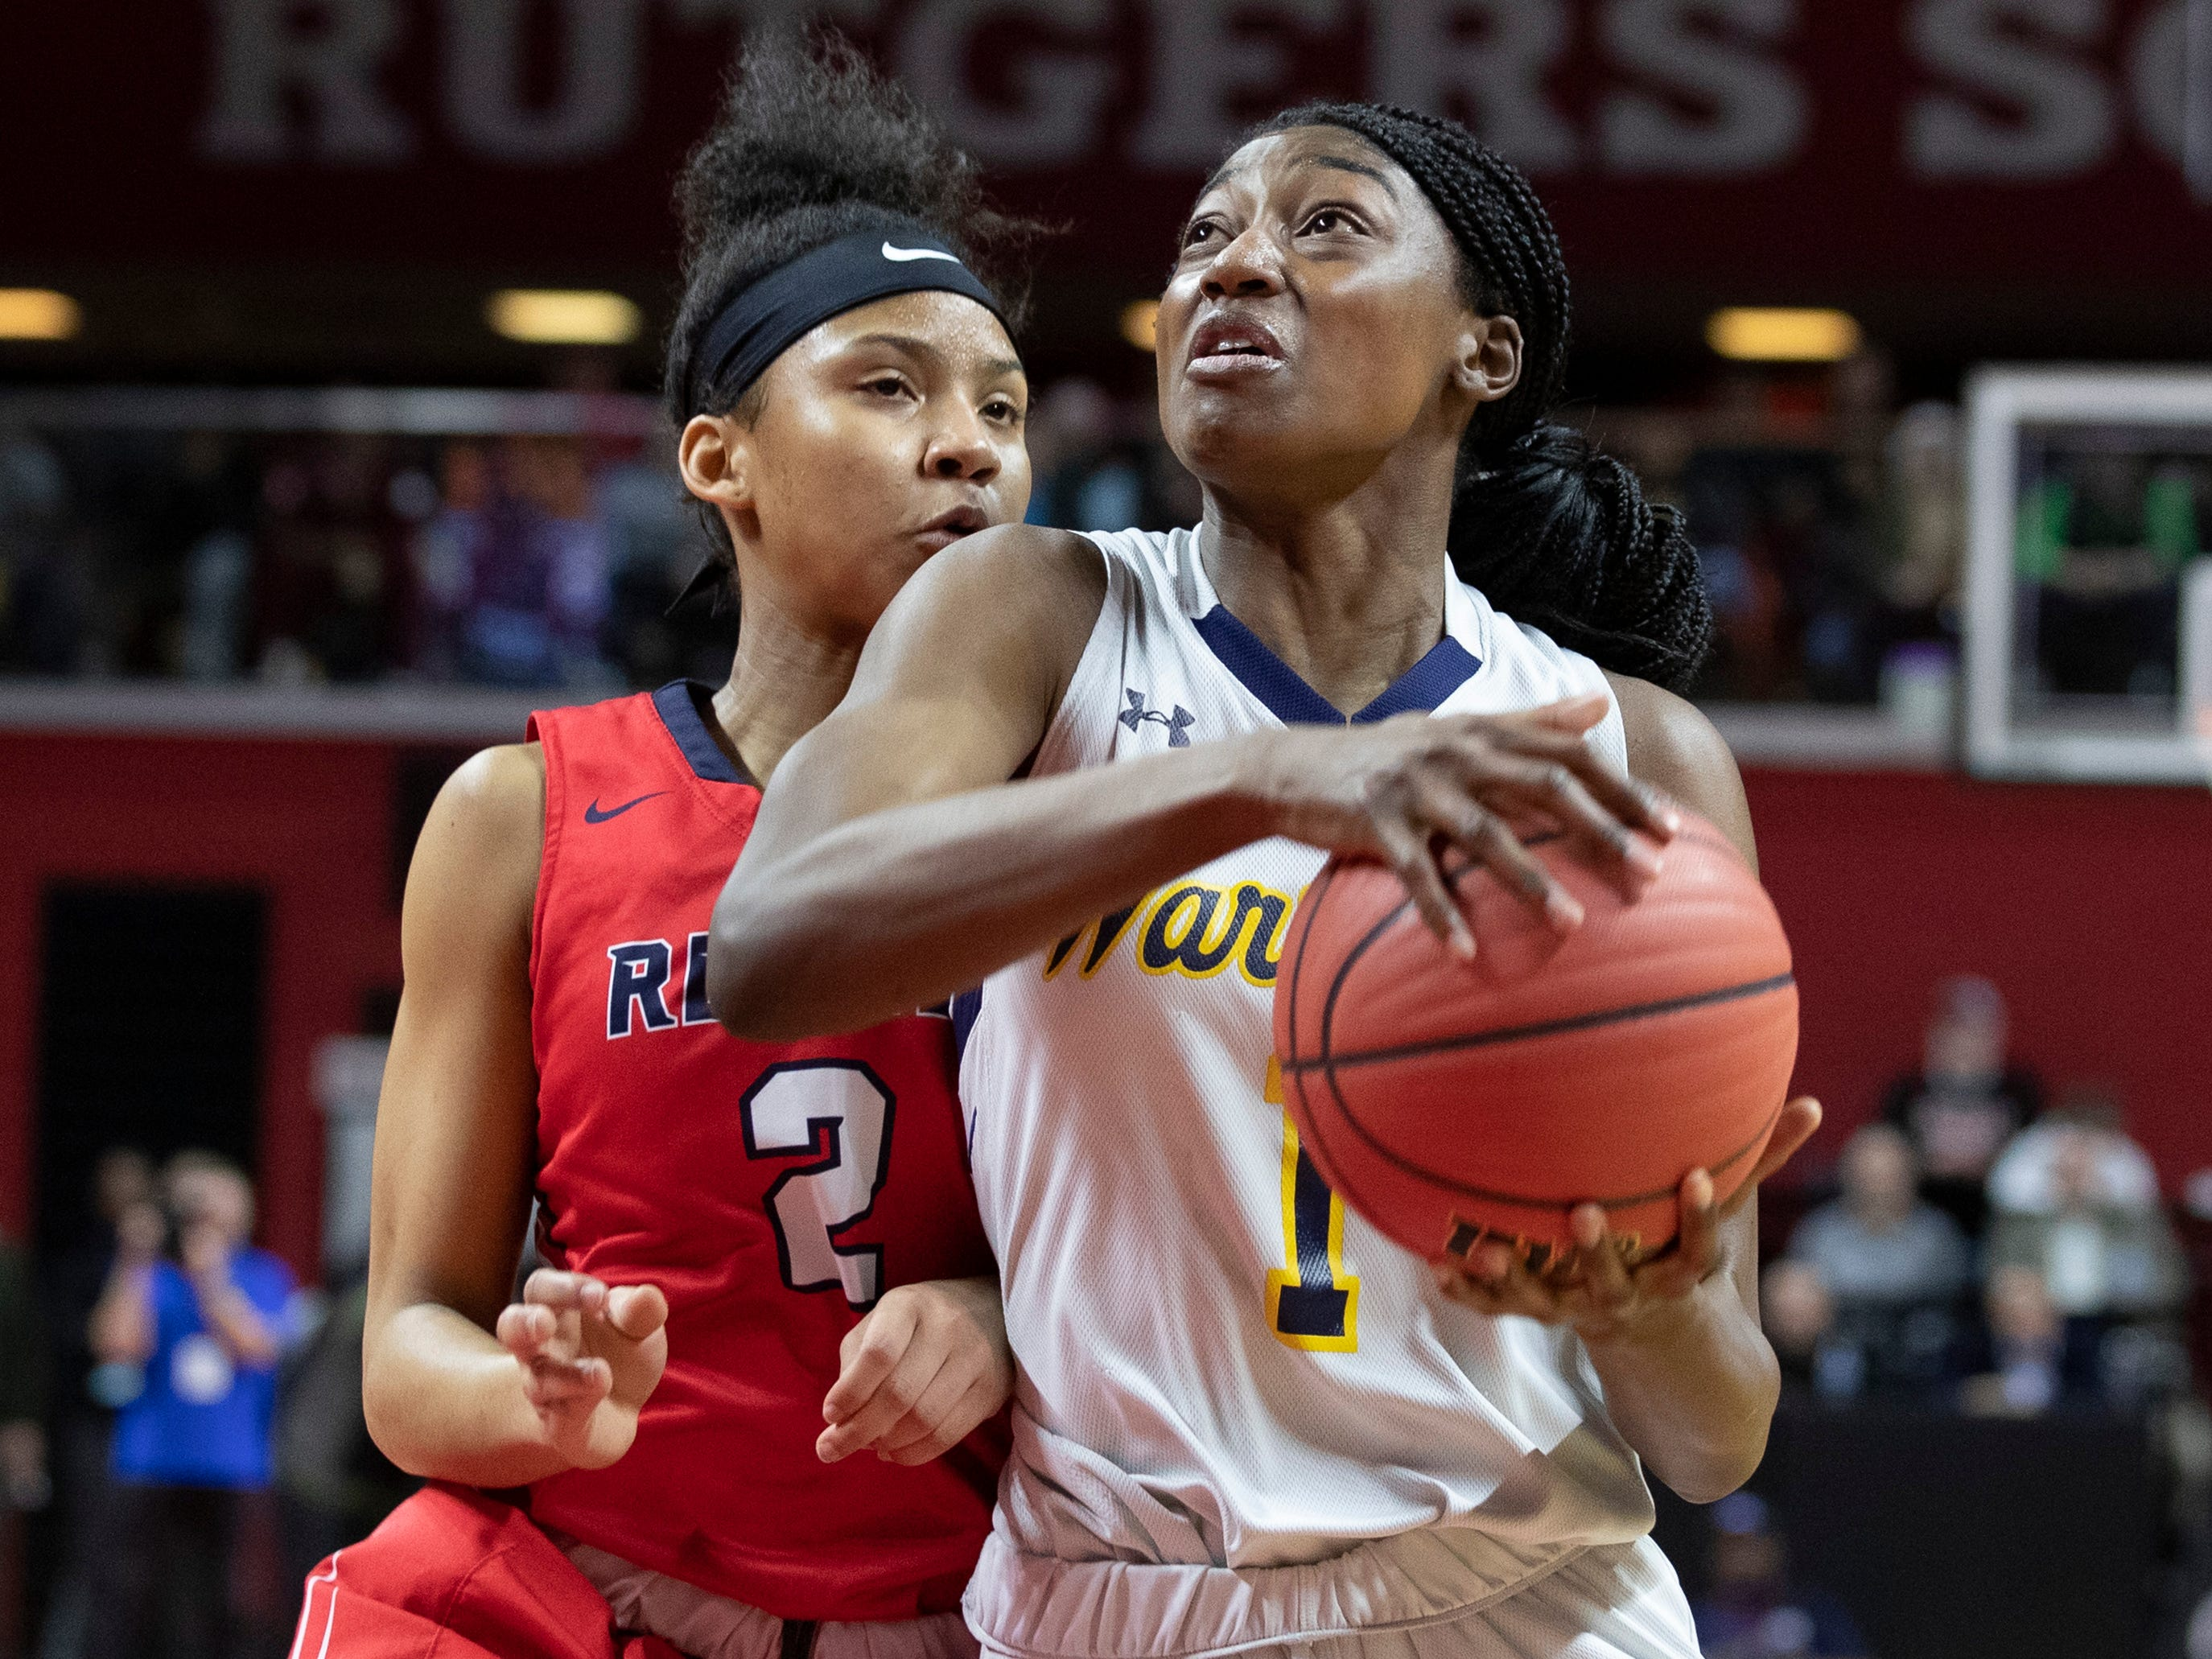 Saddle River Day's Saniah Caldwell (2) tries to stop Franklin's Diamond Miller from scoring. 2019 NJSIAA girls basketball Tournament of Champions in Piscataway, N.J. on March 17, 2019.